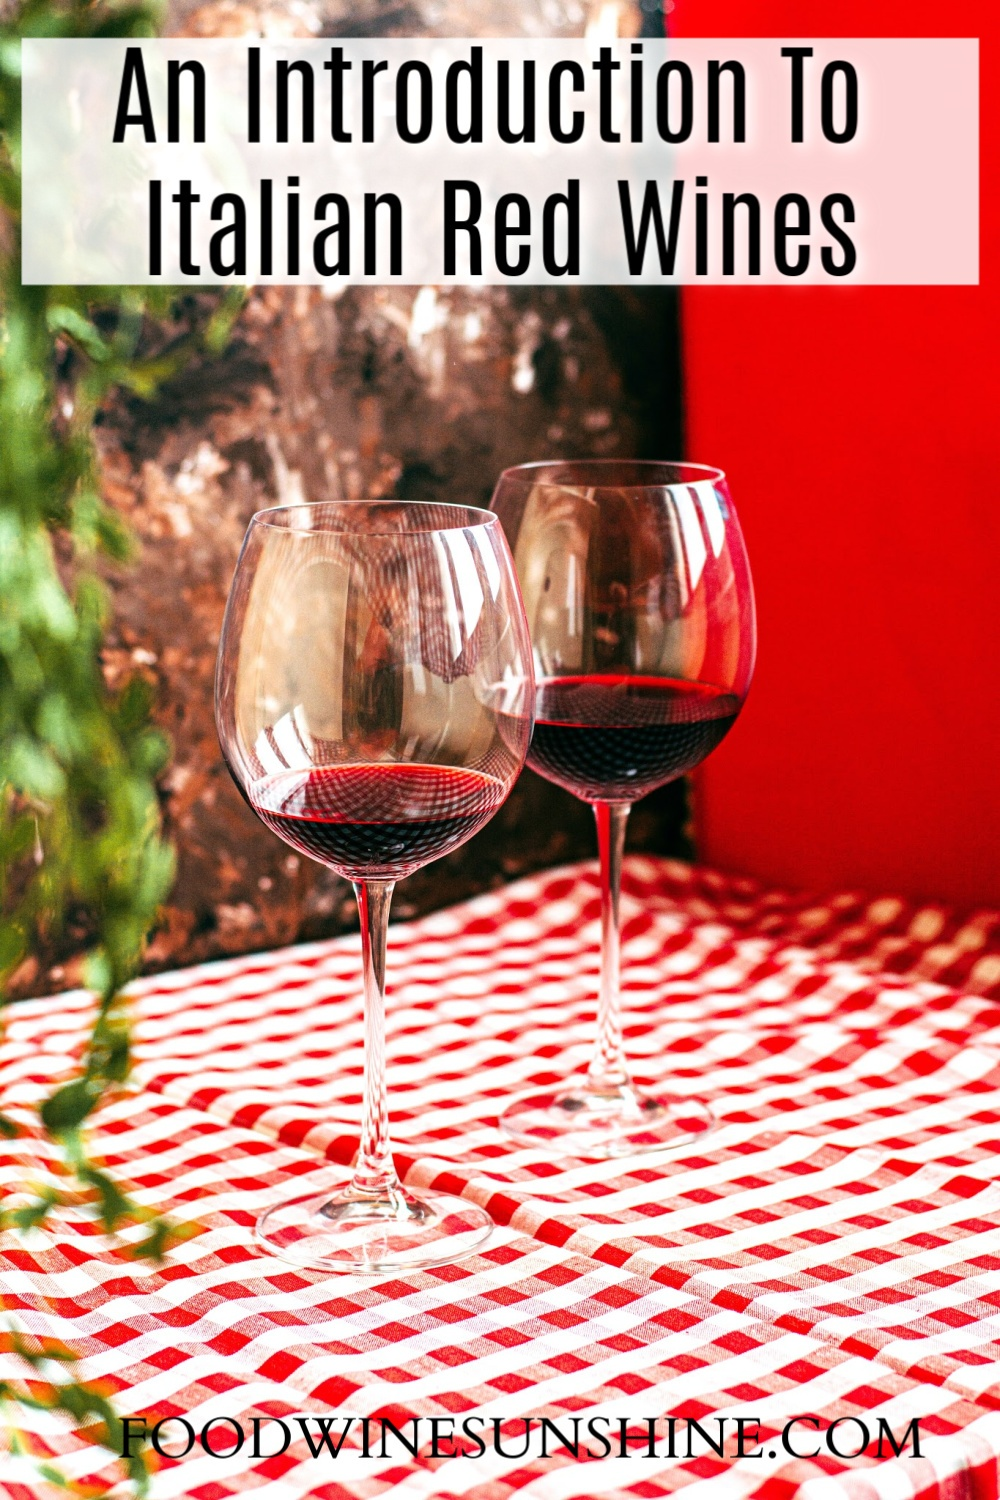 An Introduction To Italian Red Wines